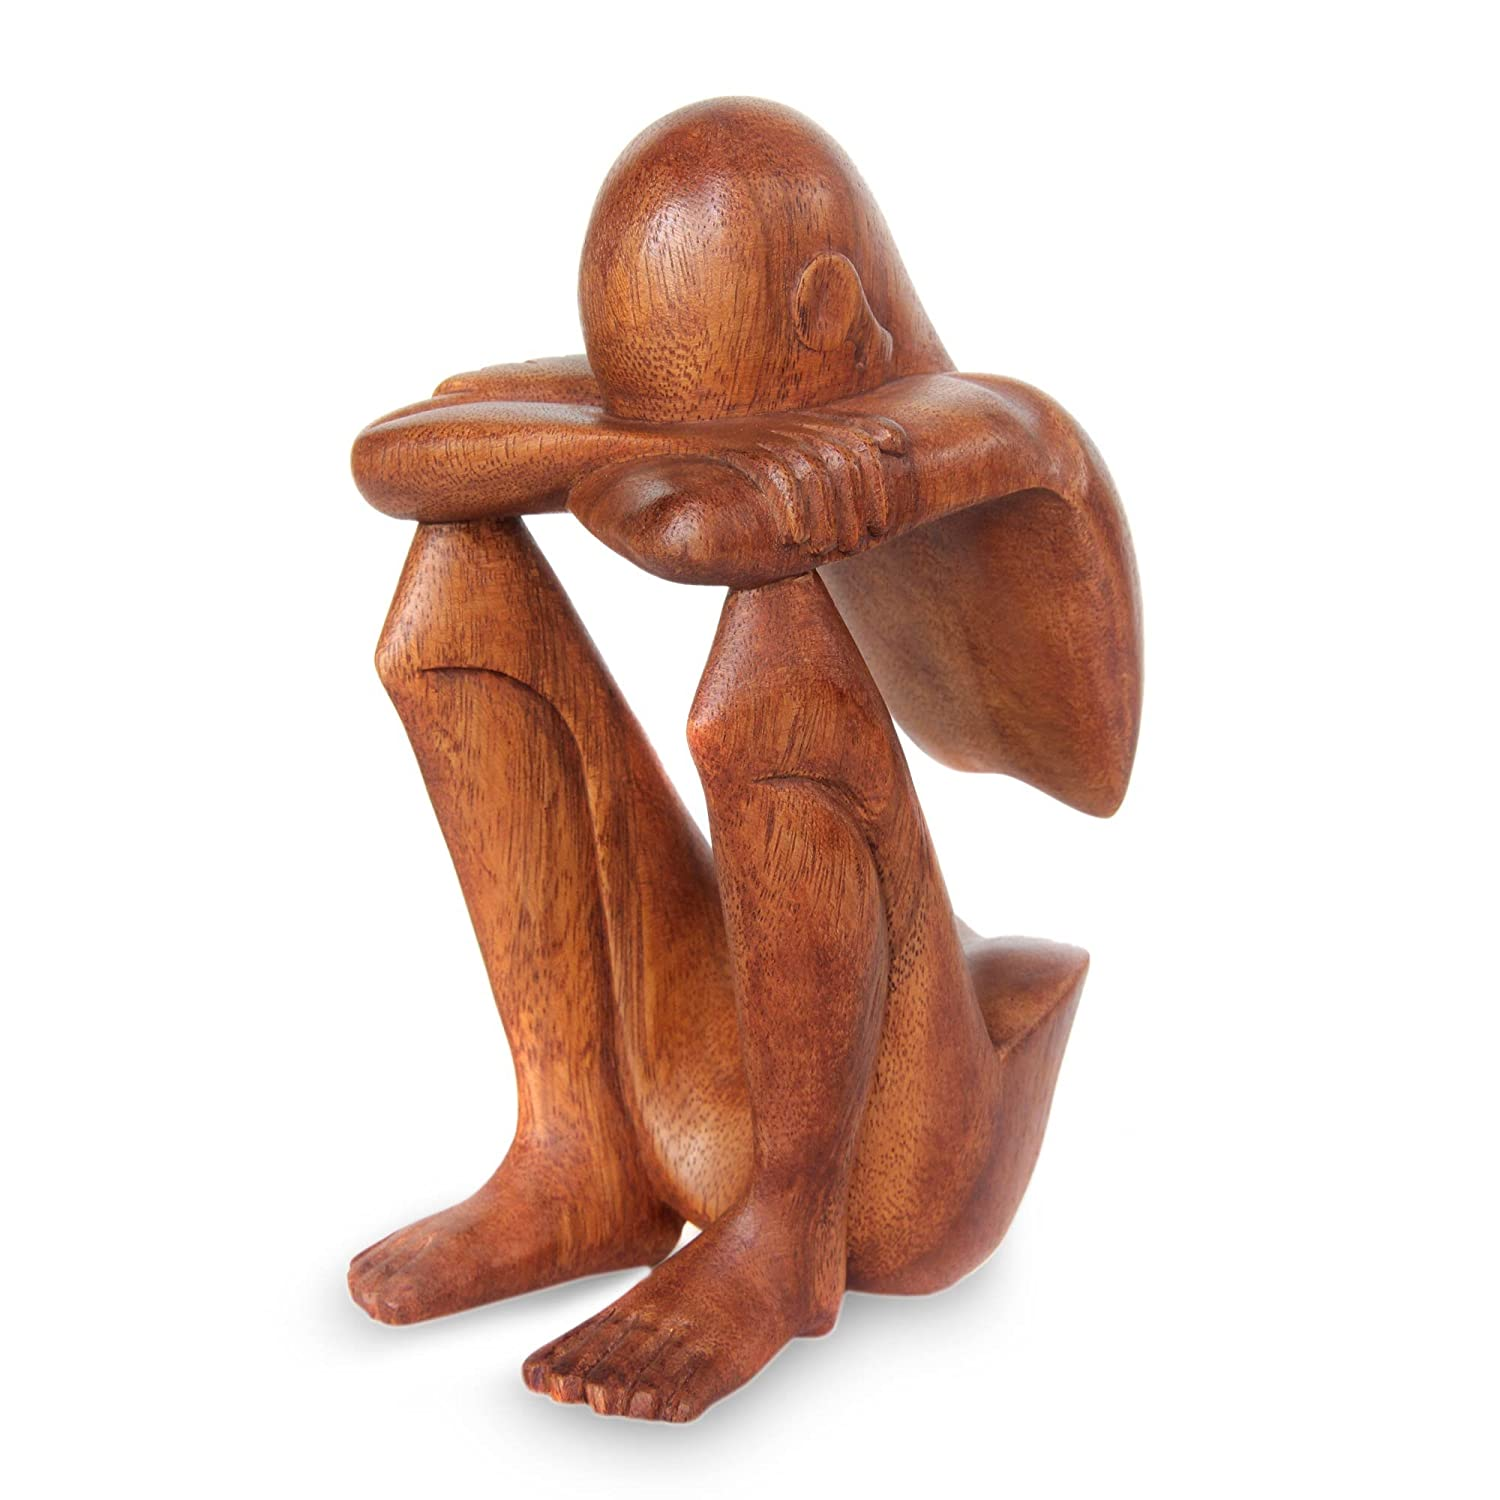 Brown Thought And Meditation Wood Sculpture